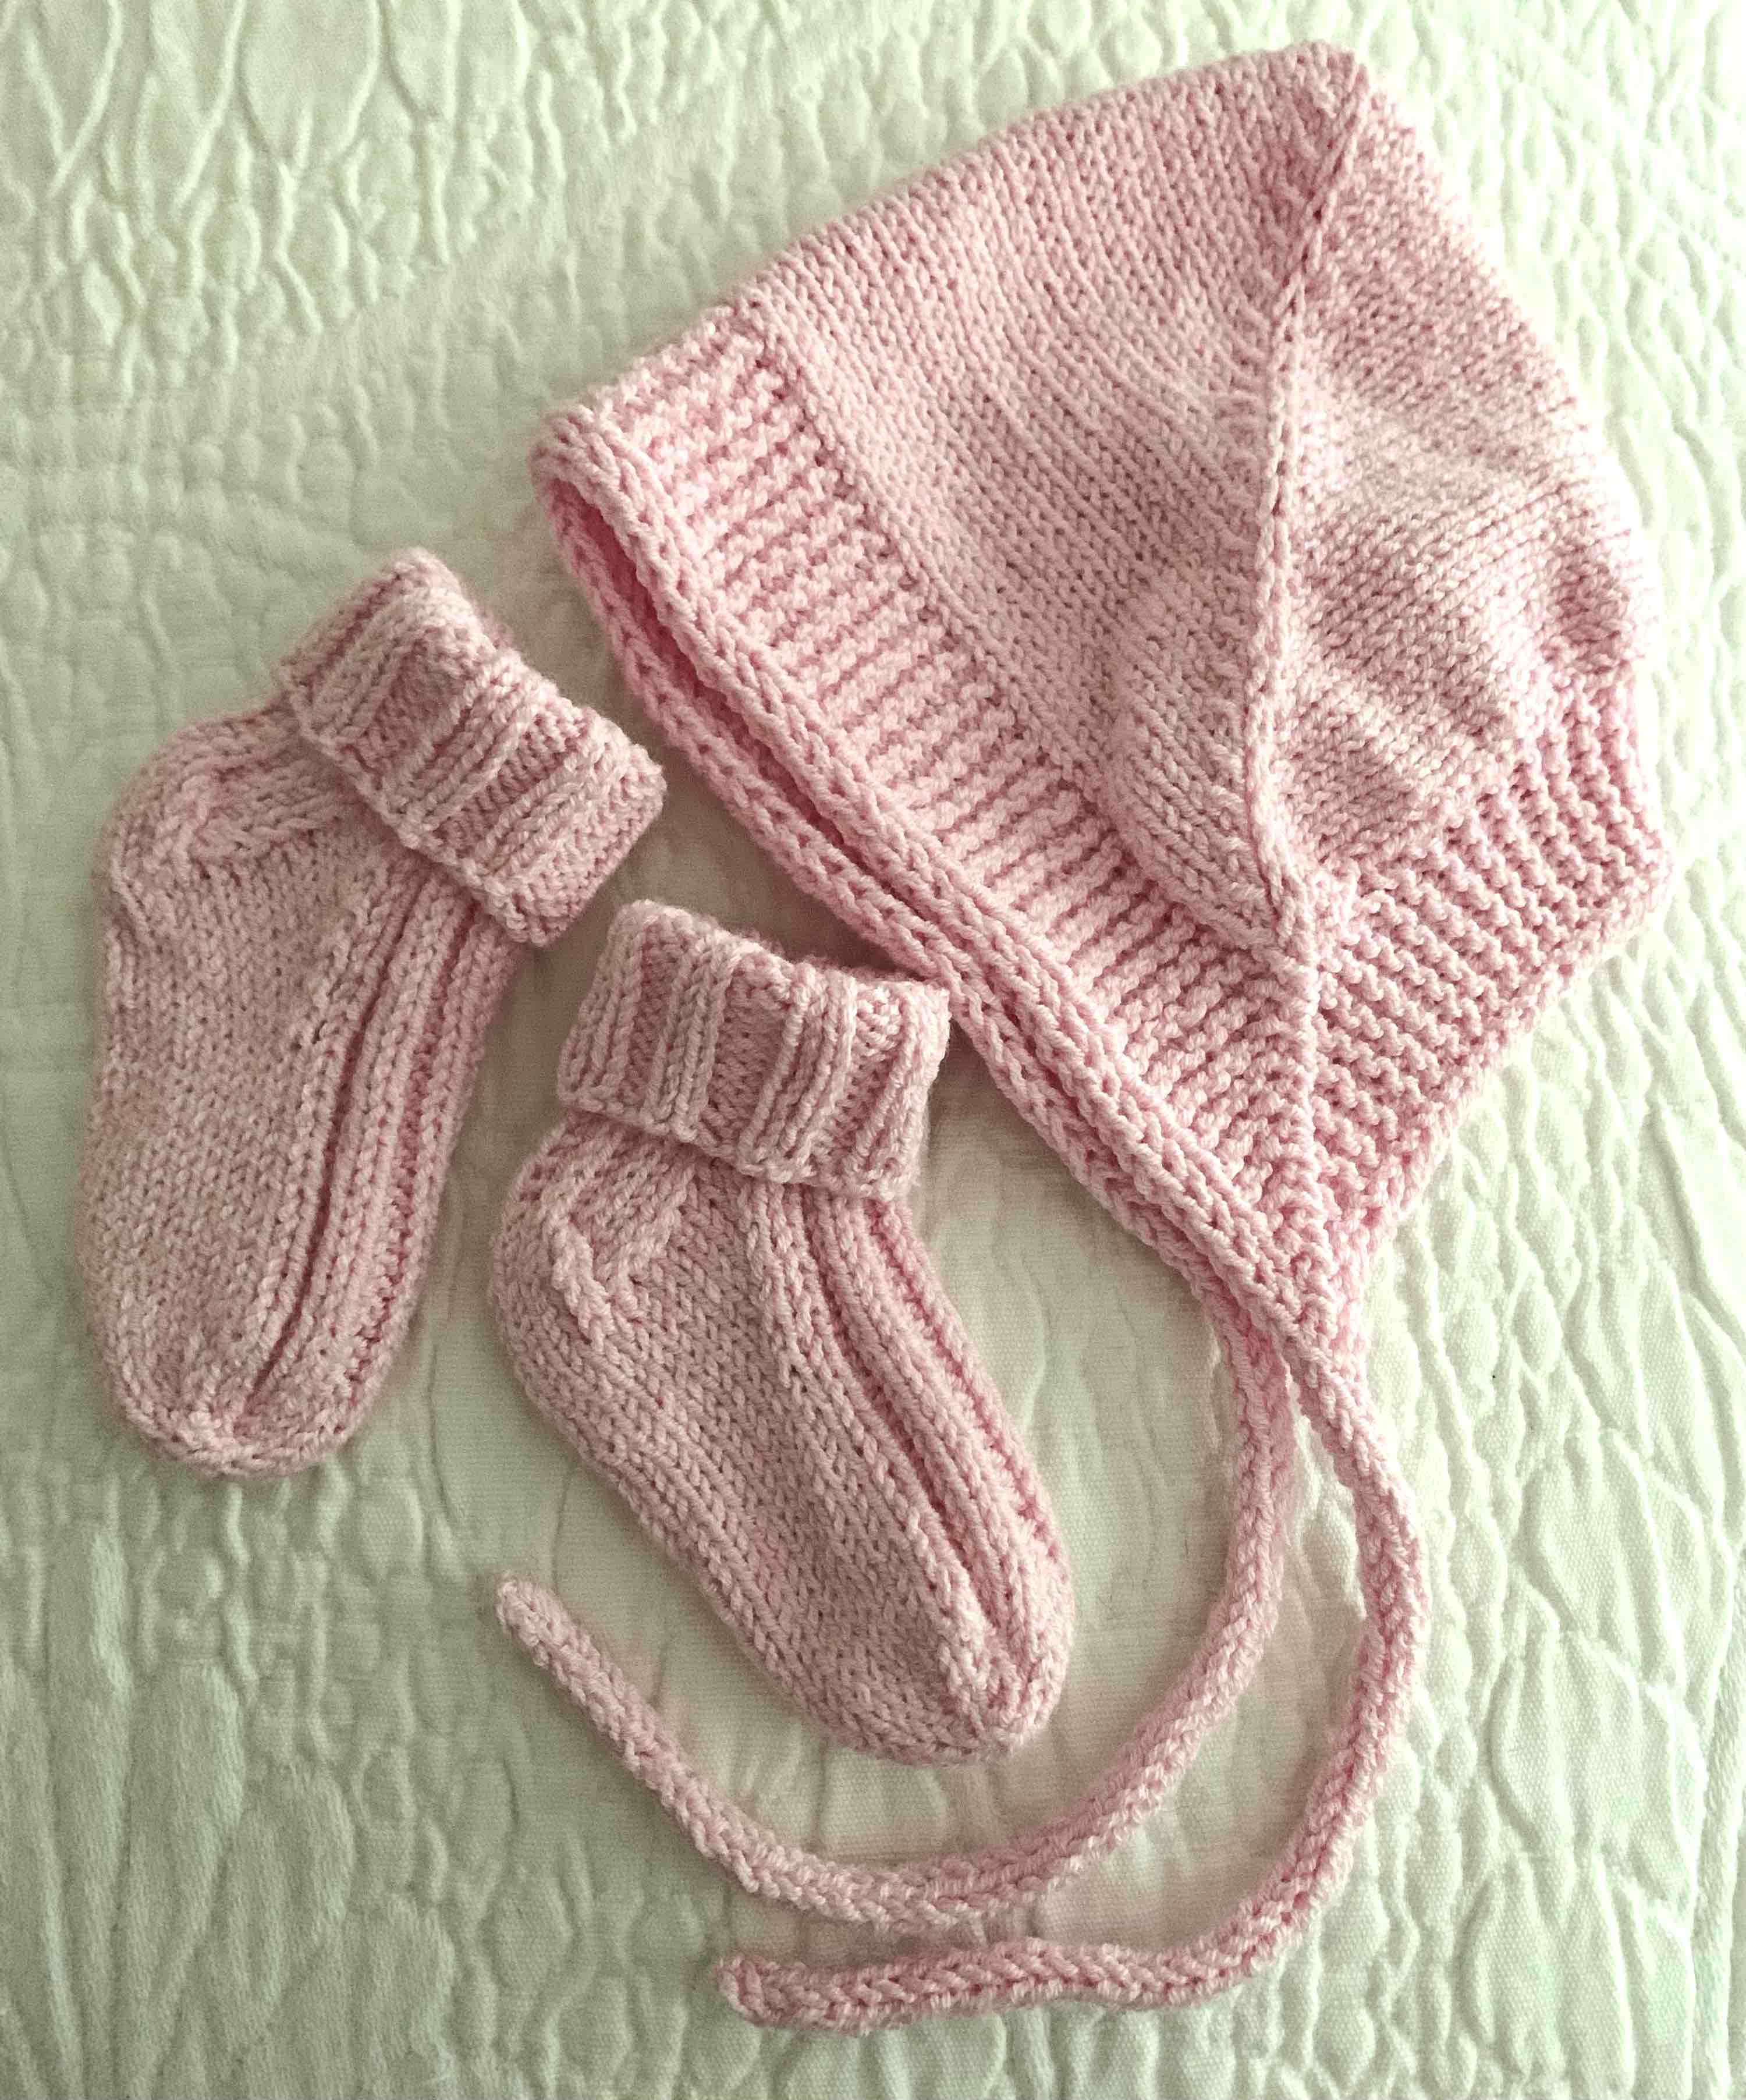 Knitting baby set with bonnet and socks